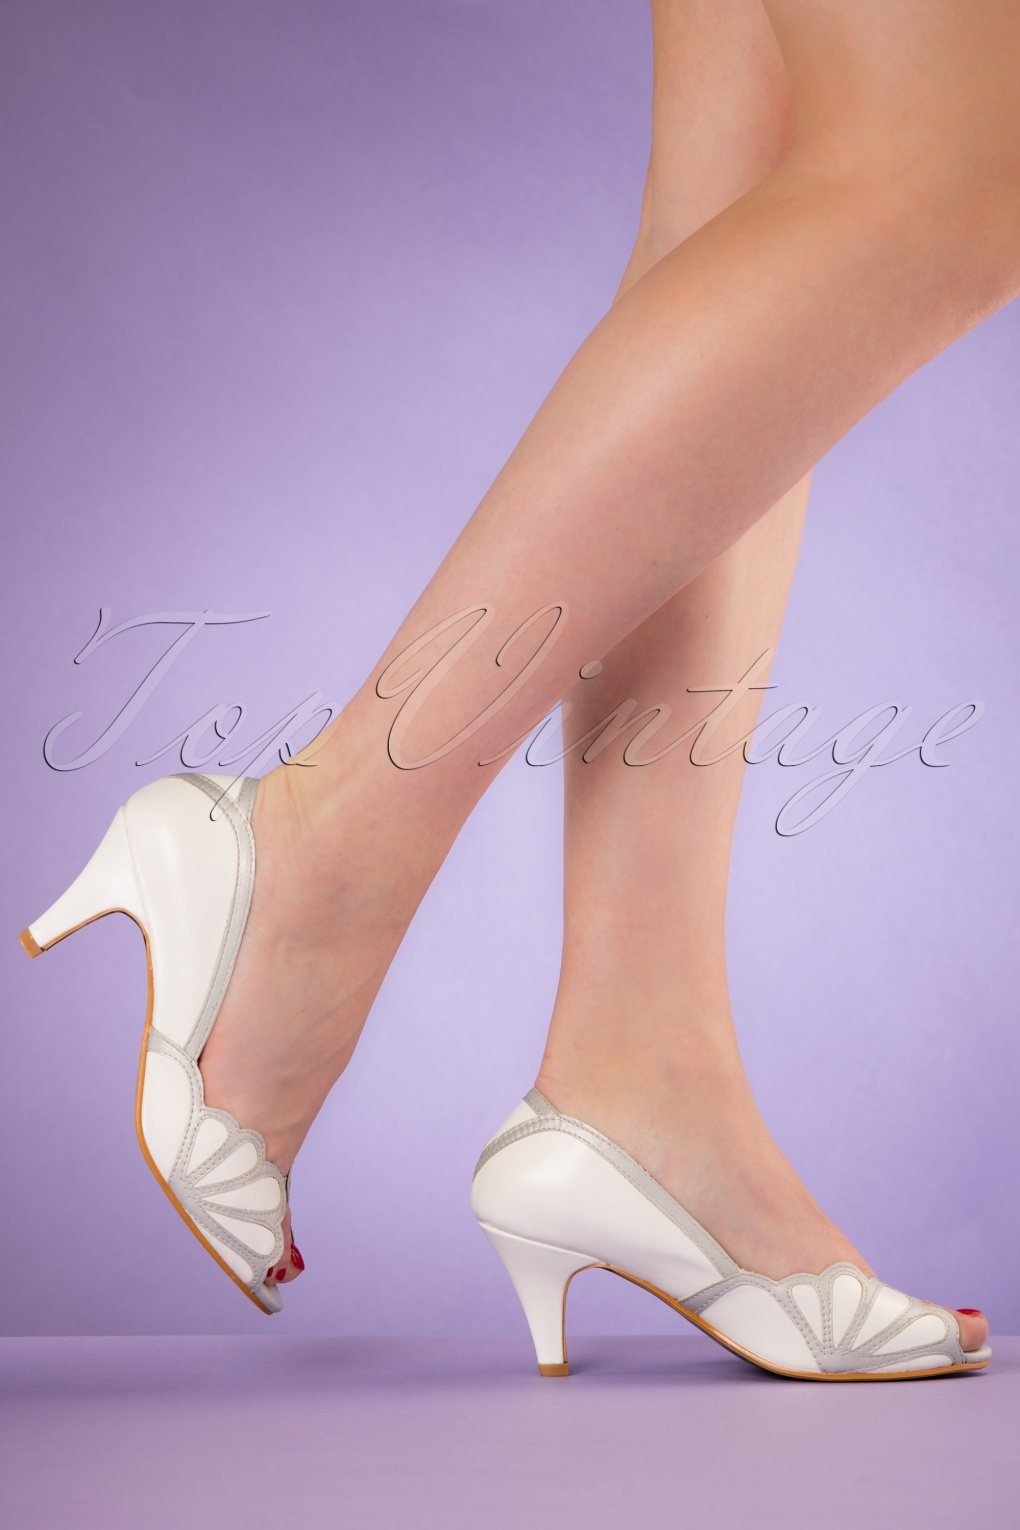 10 Popular 1940s Shoes Styles for Women 40s Heather Peeptoe Pumps in White £53.91 AT vintagedancer.com